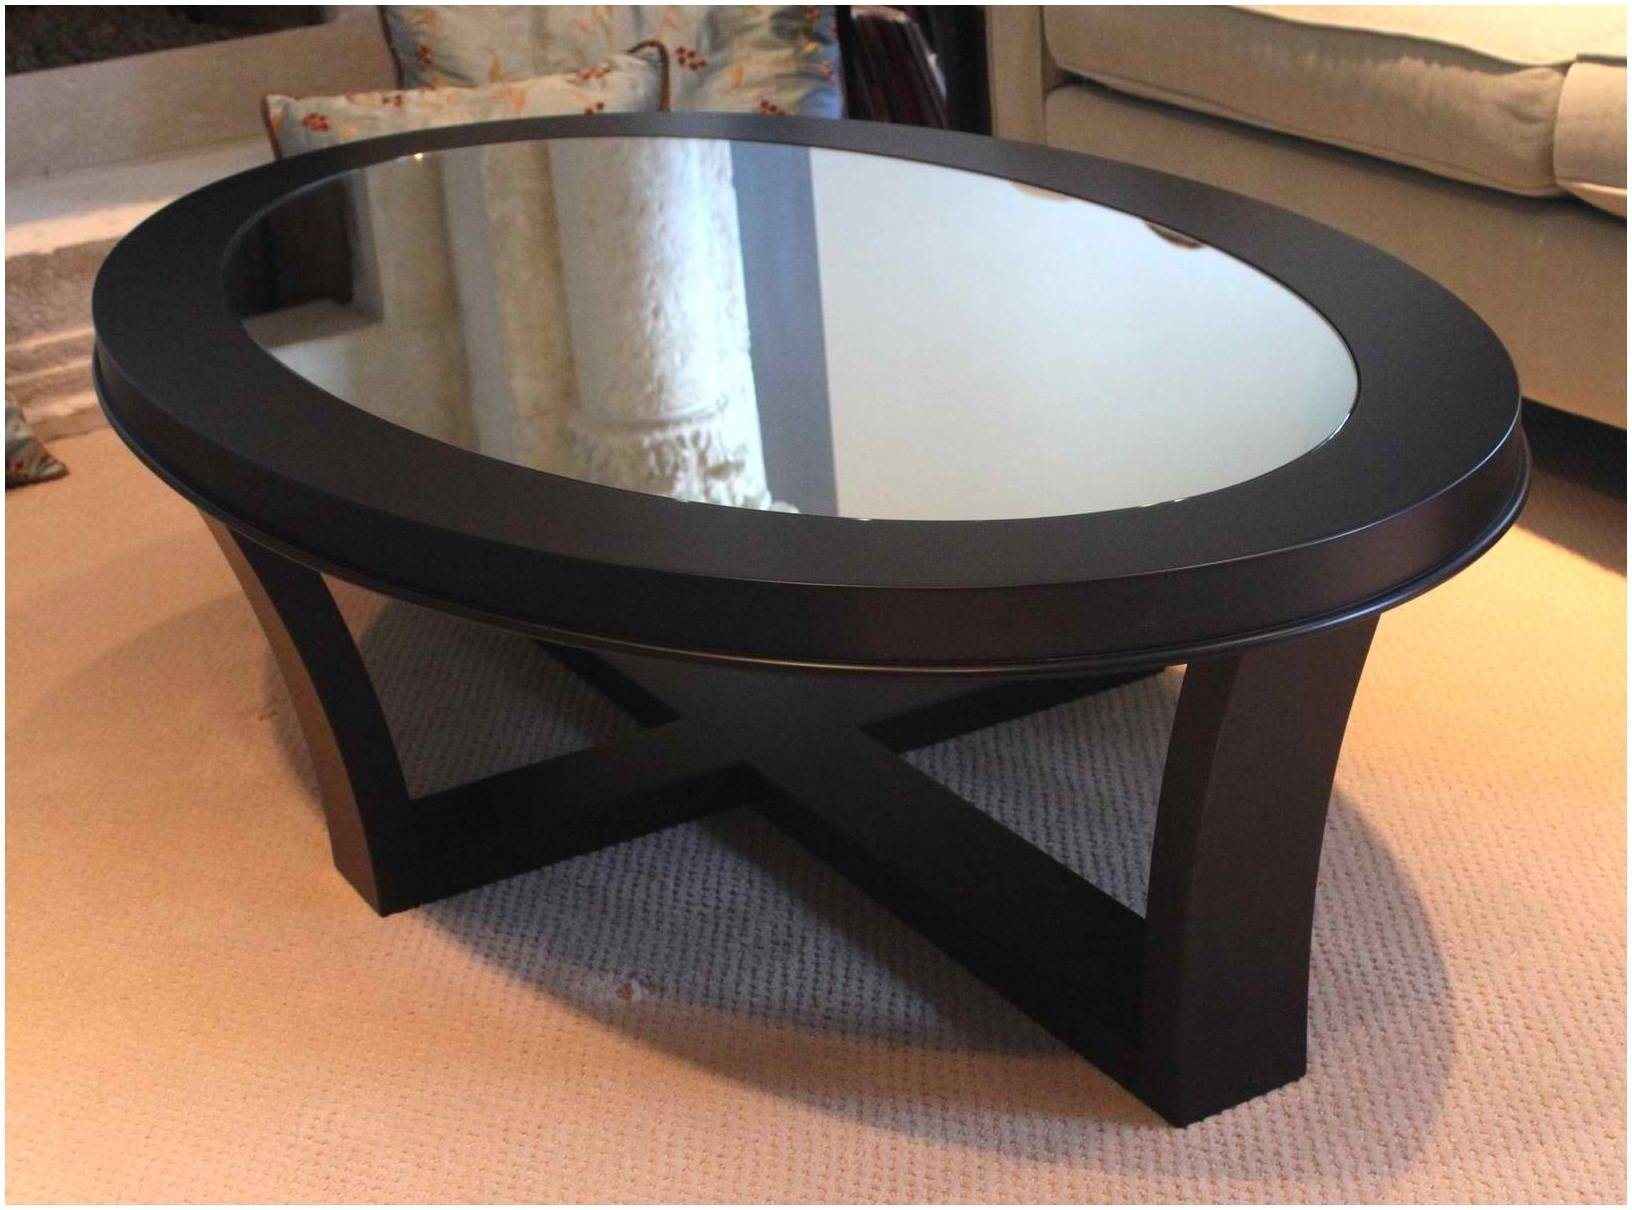 Black Glass Coffee Tables Uk – Cocinacentral.co with regard to Oval Black Glass Coffee Tables (Image 6 of 30)